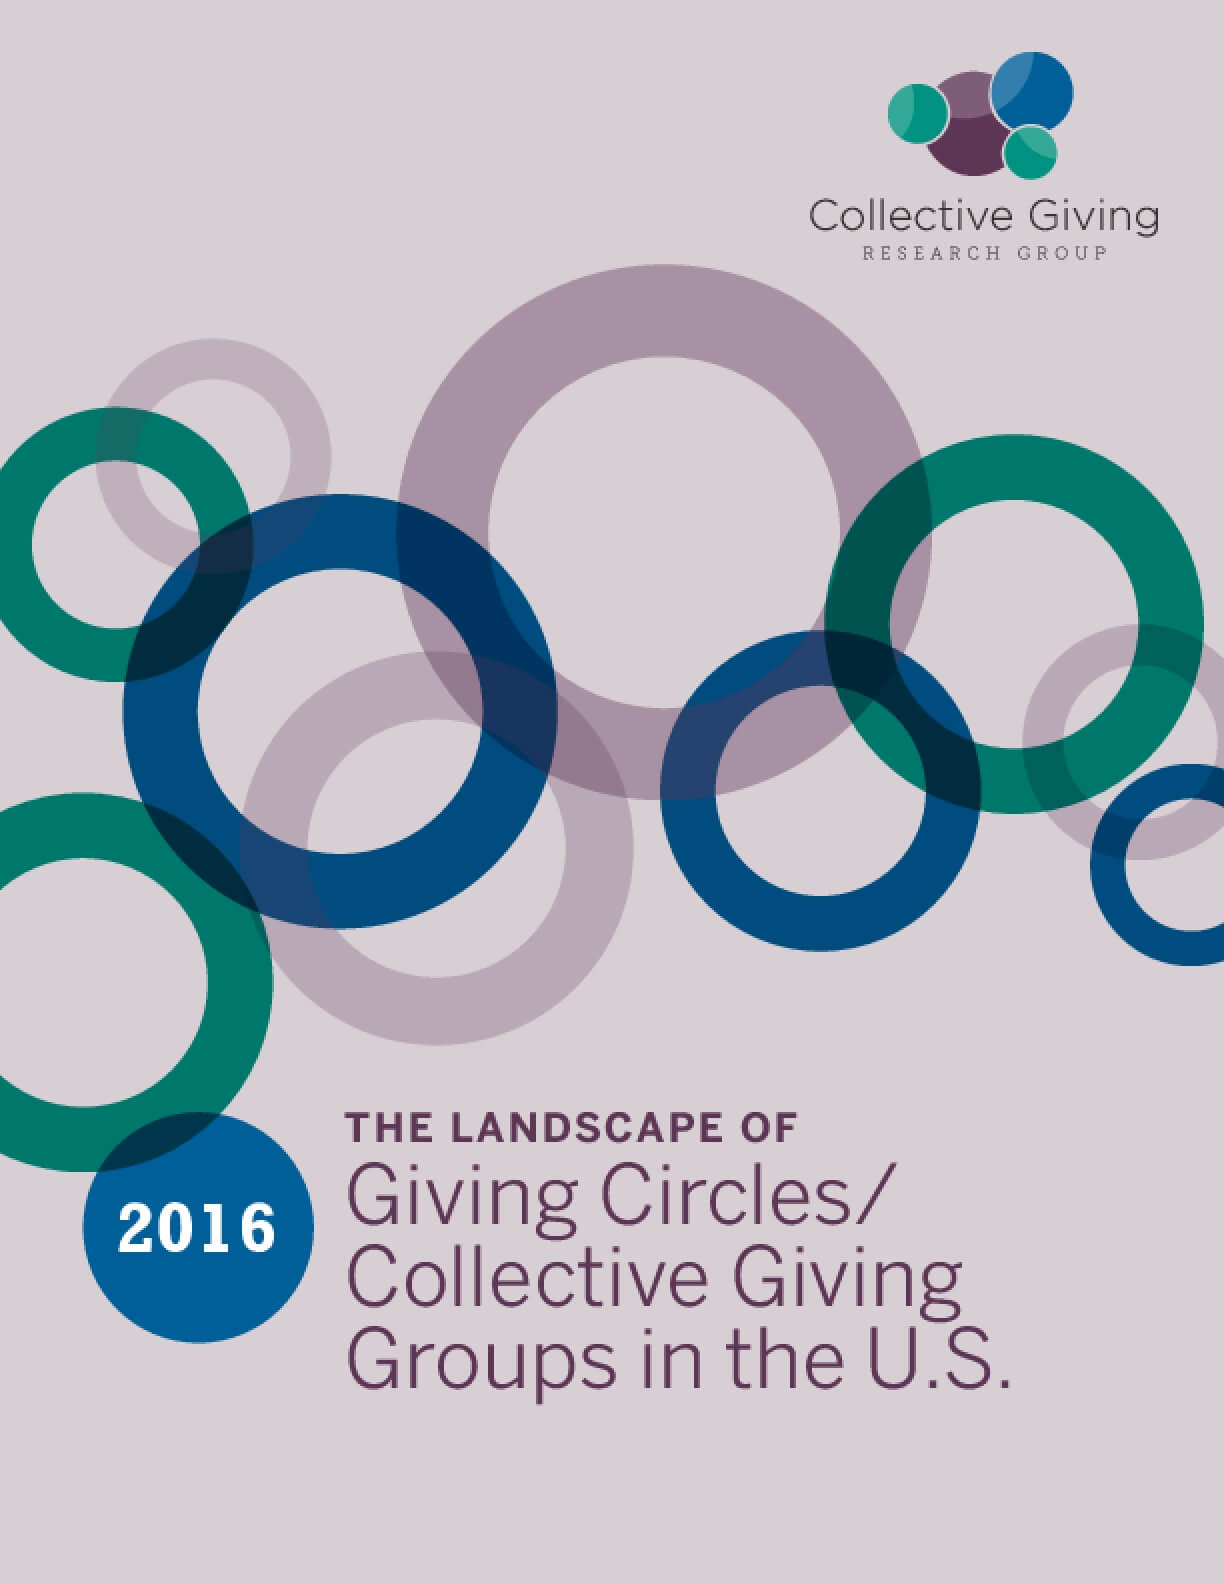 The Landscape of Giving Circles/Collective Giving Groups in the U.S.